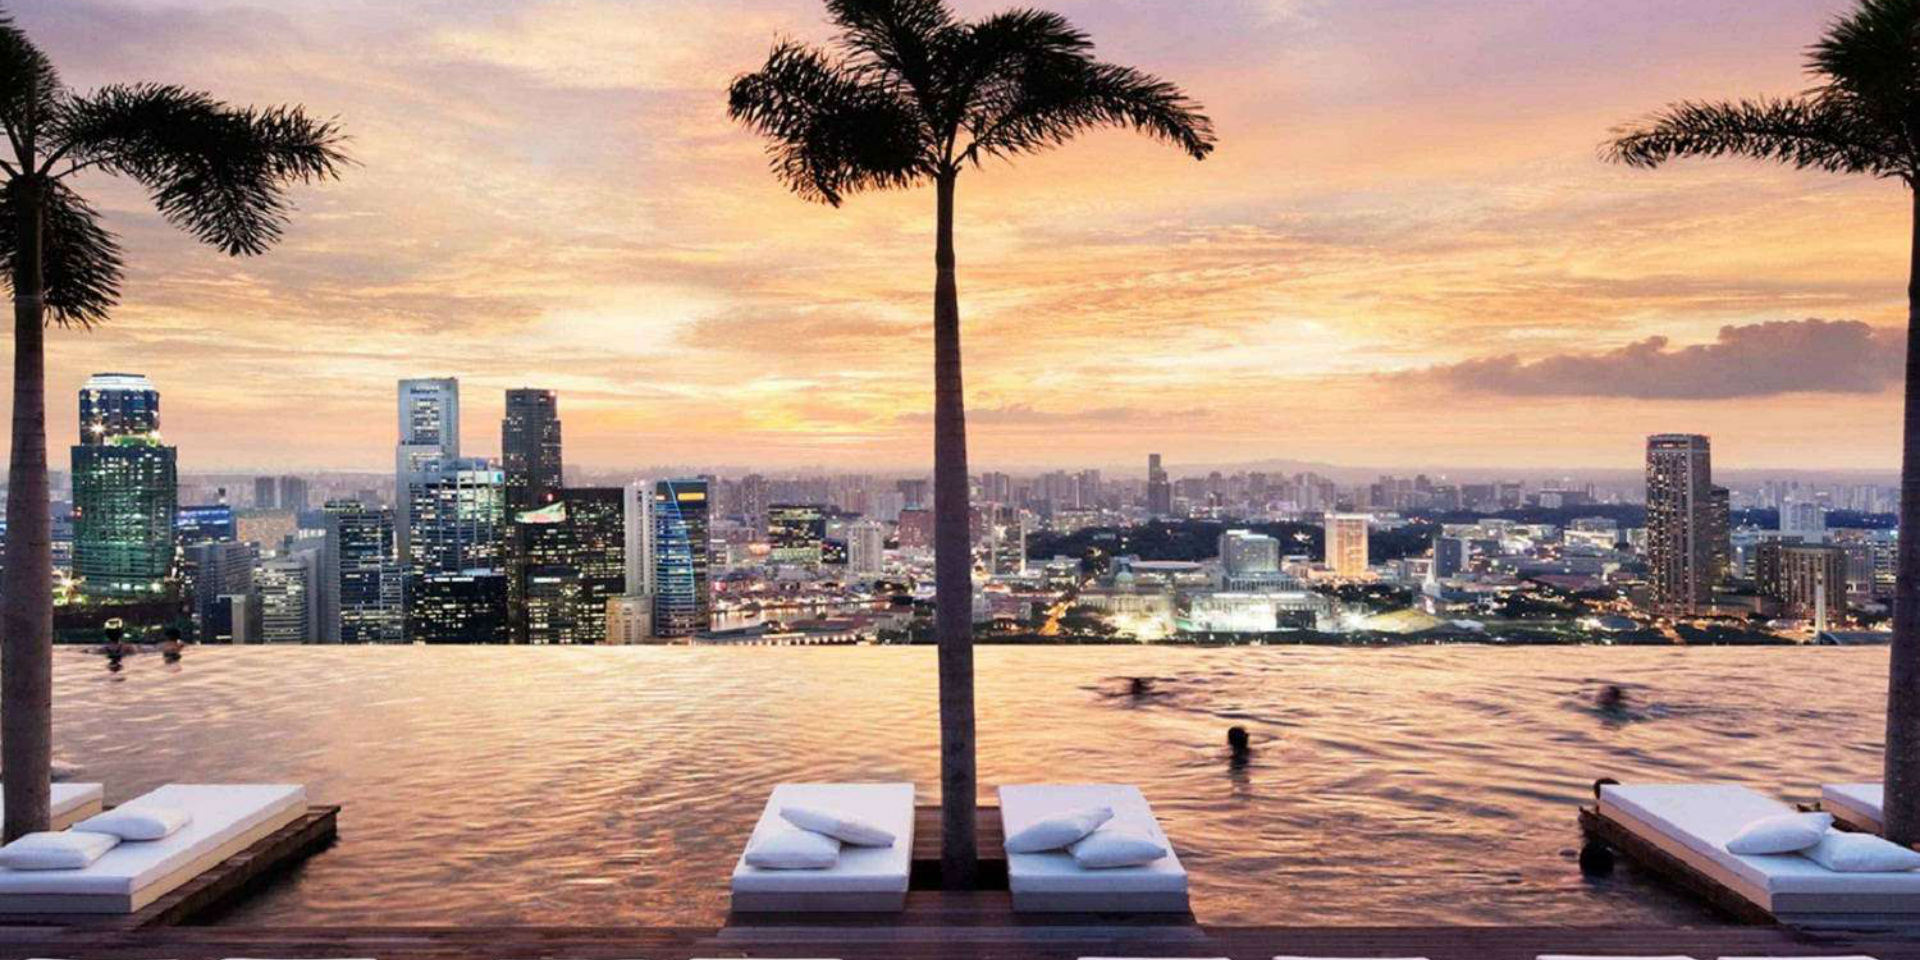 The Top 5 most Instagrammed hotels in the world